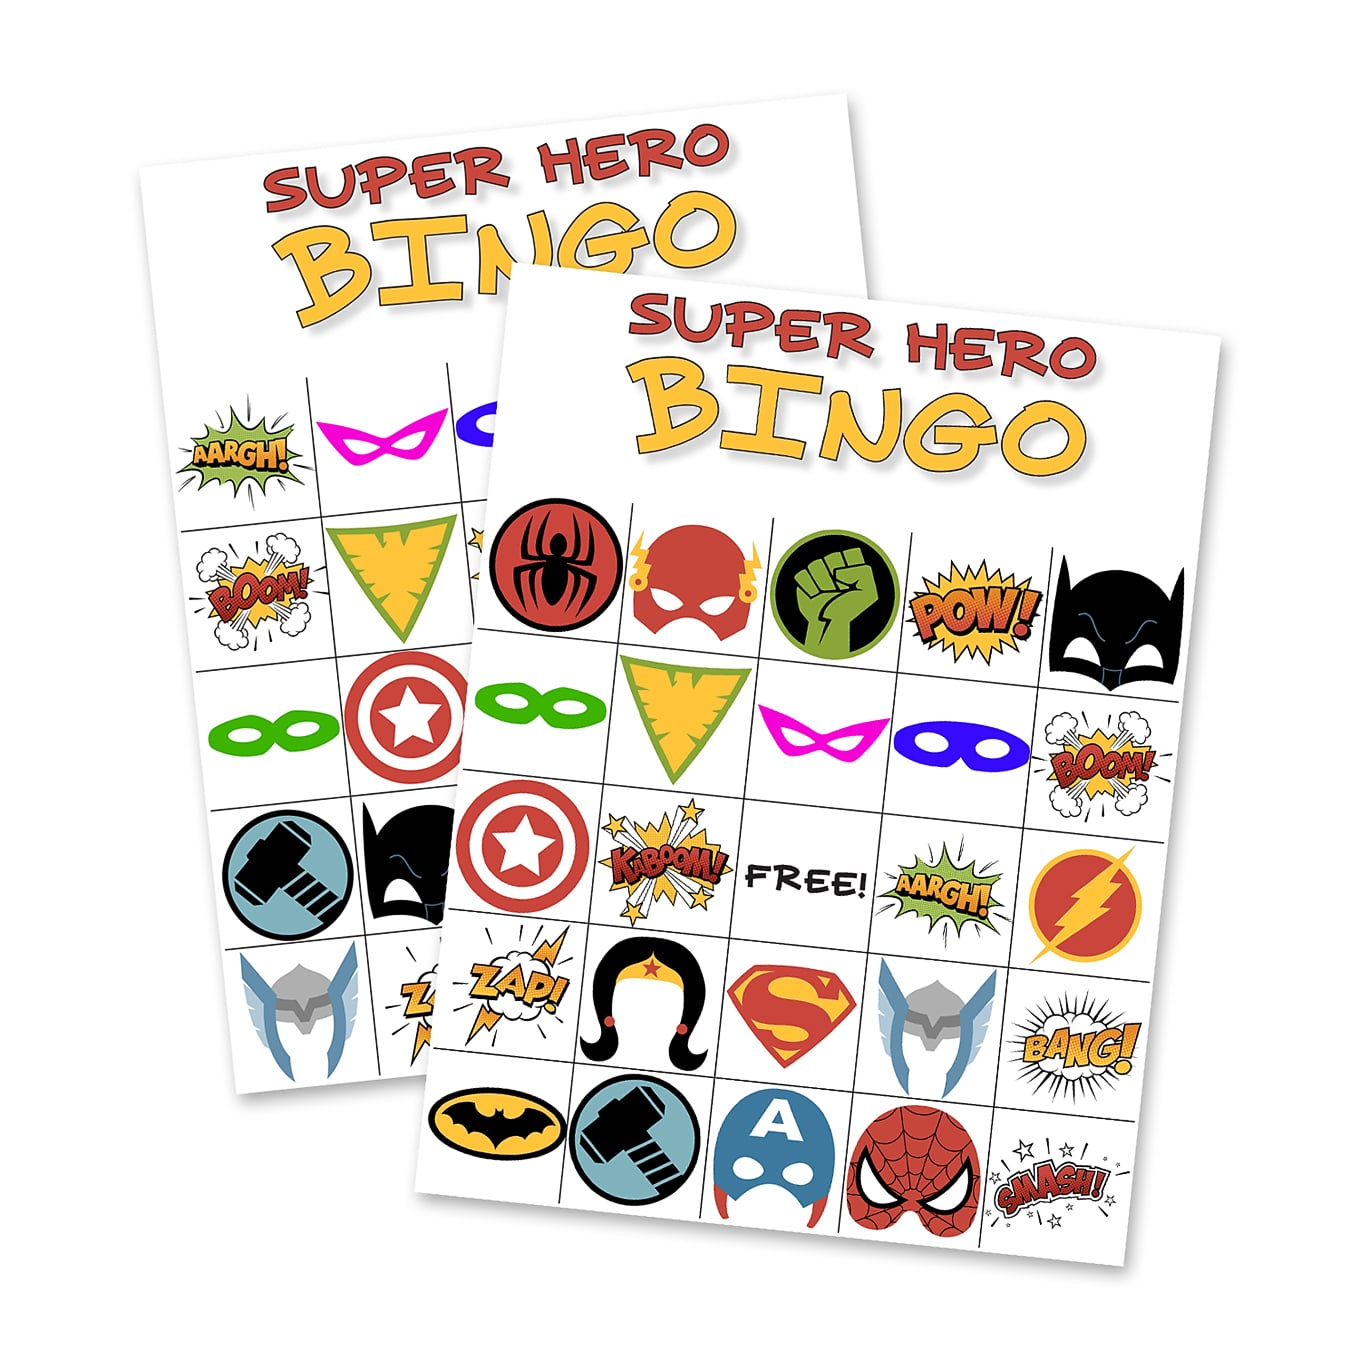 image regarding Free Printable Superhero Photo Booth Props called Free of charge Printable Tremendous Hero BINGO Bash